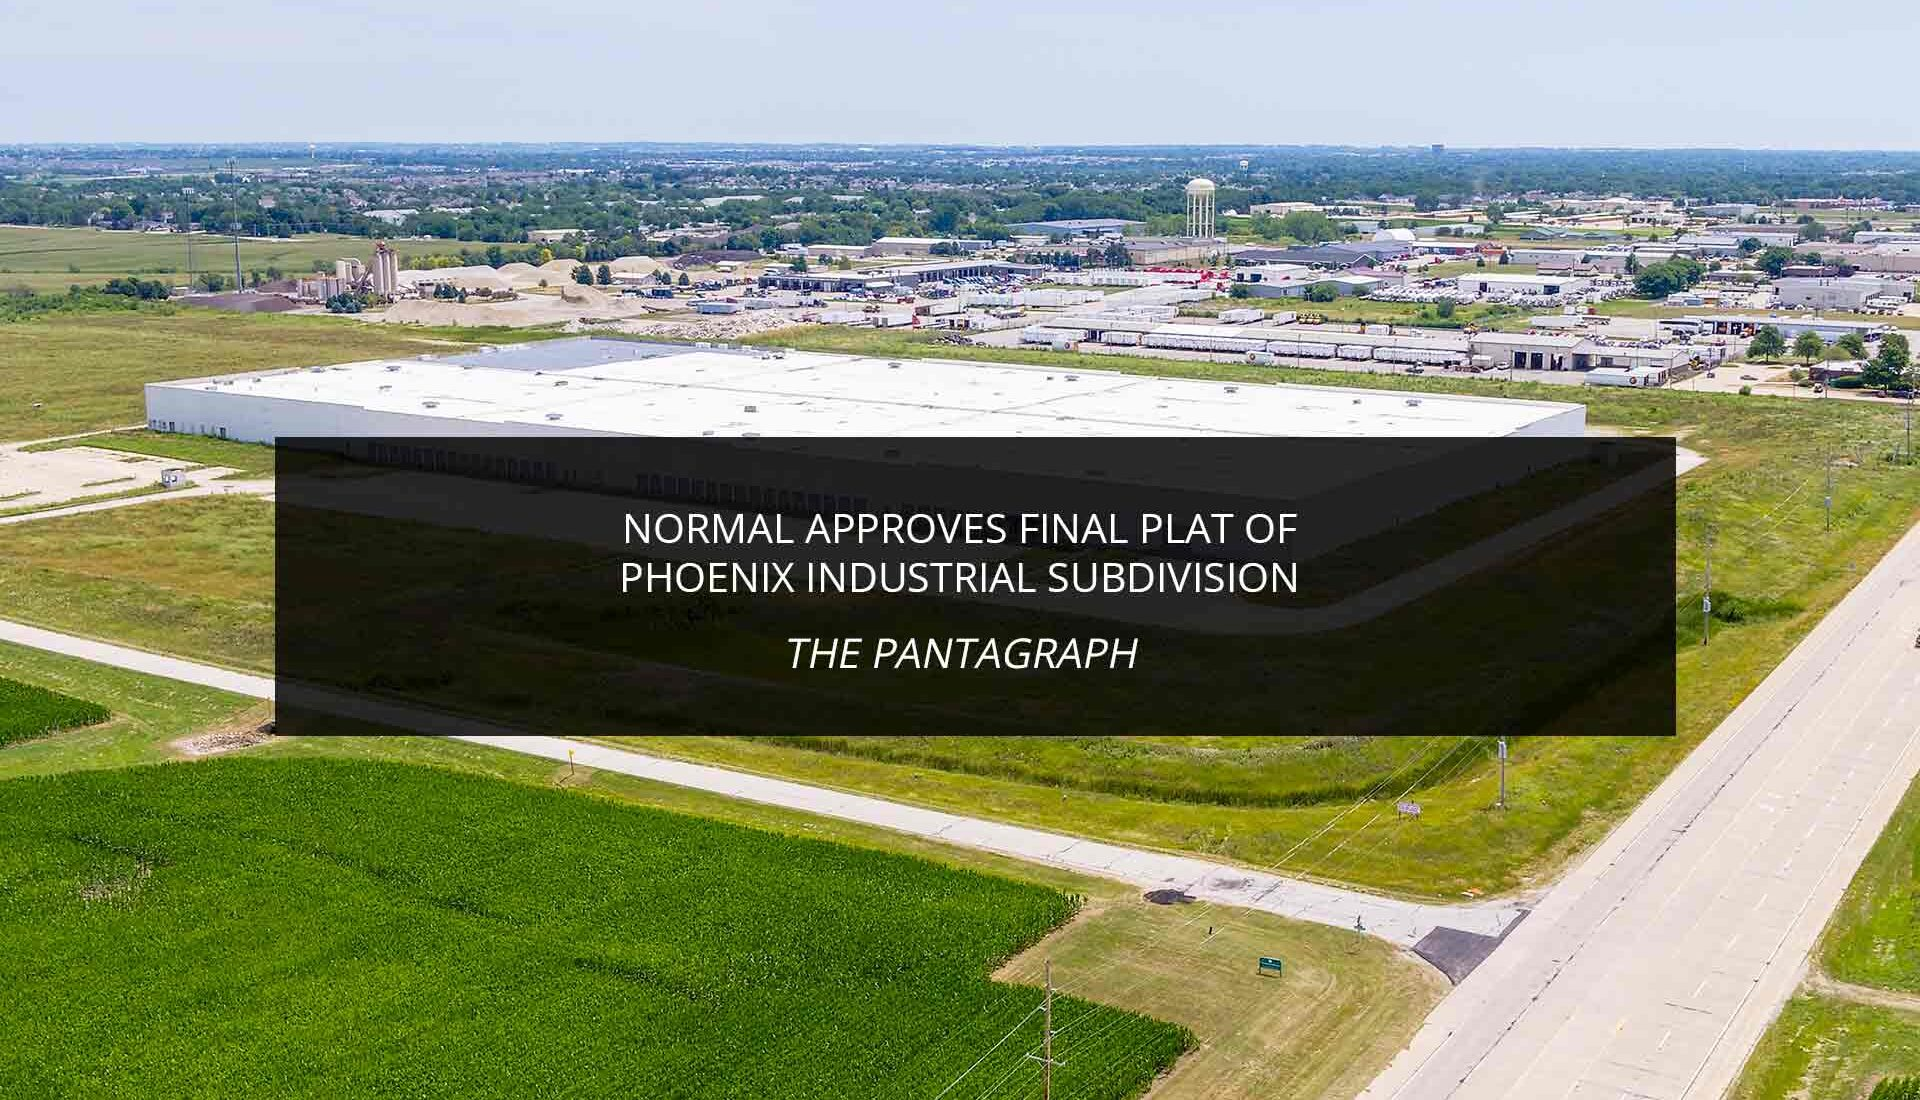 Normal approves final plat of Phoenix Industrial Subdivision